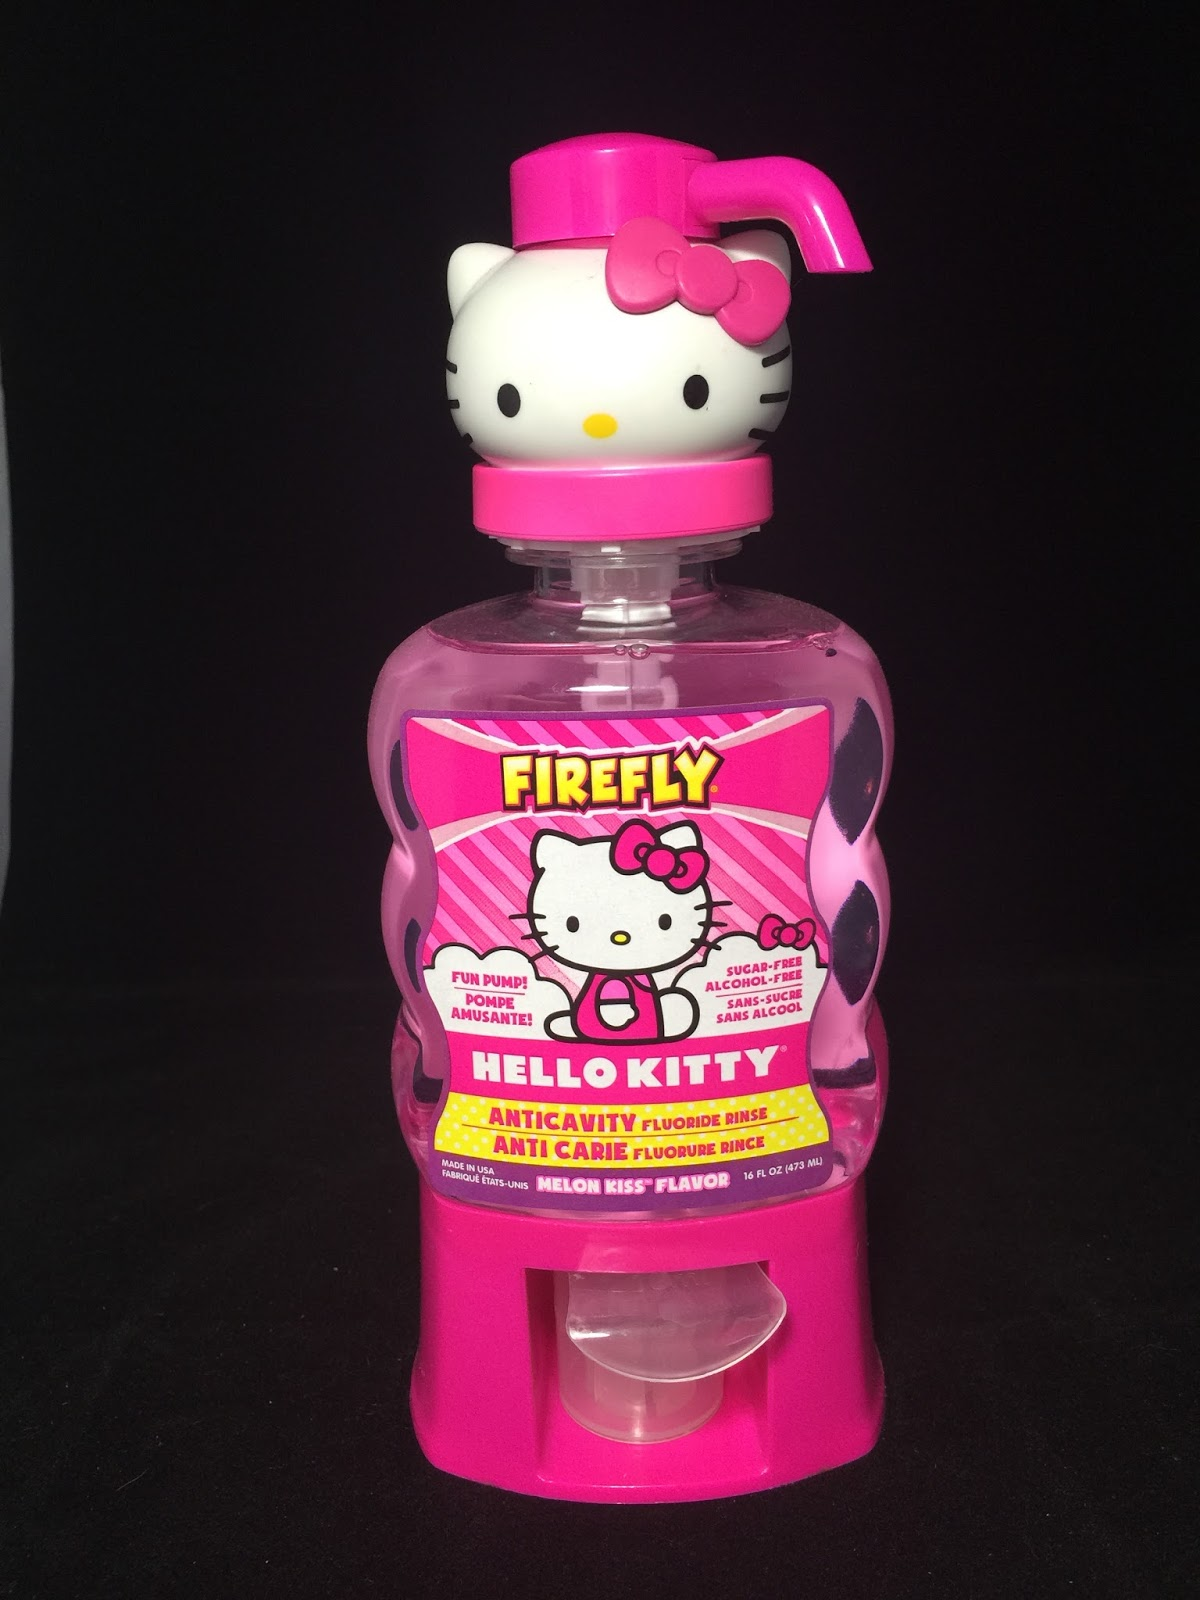 Firefly making Oral care fun